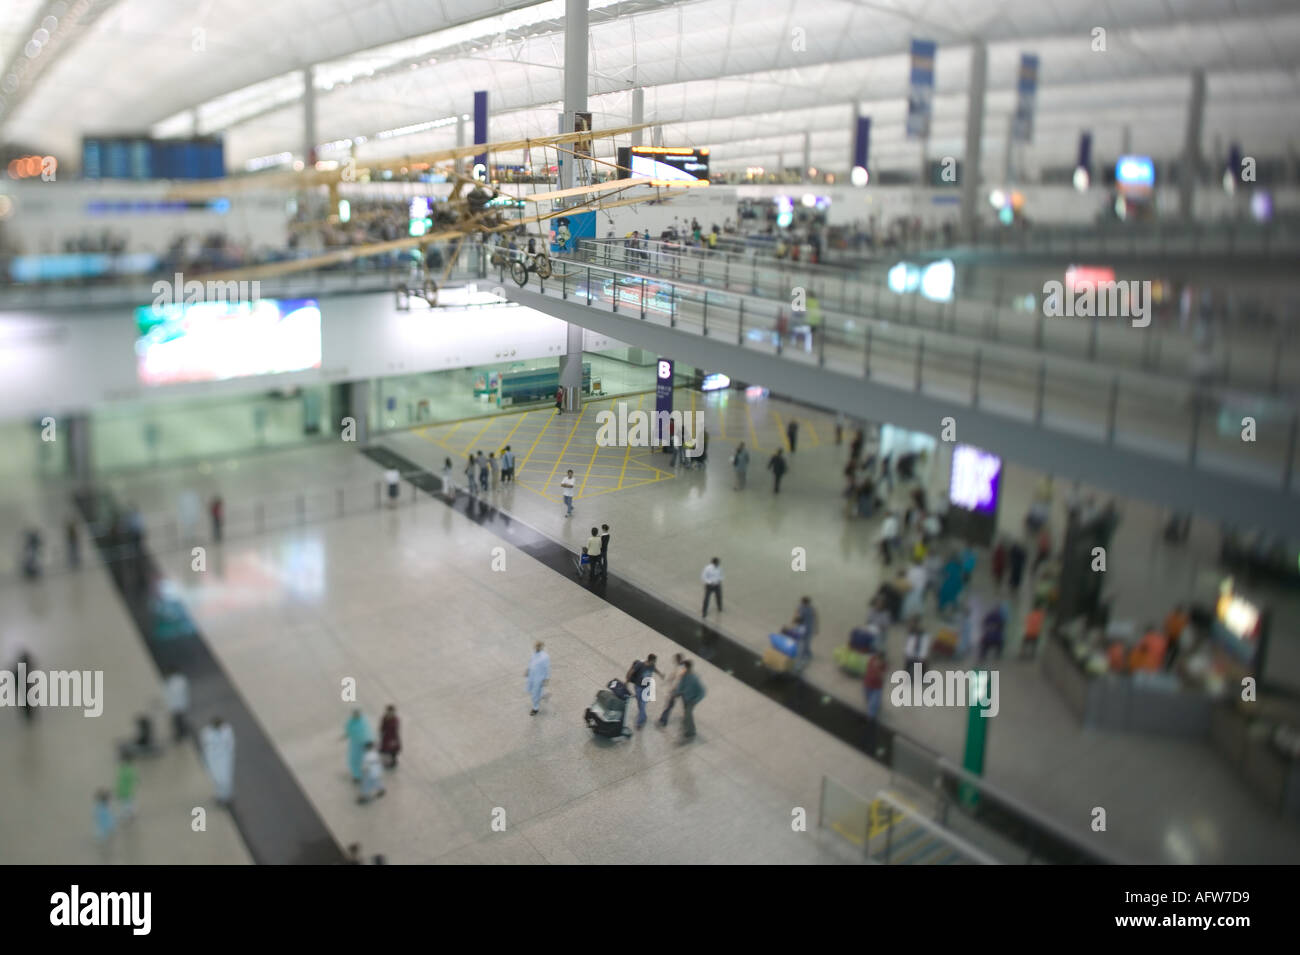 Passengers at the arrivals area of Hong Kongs Chek Lap Kok airport - Stock Image